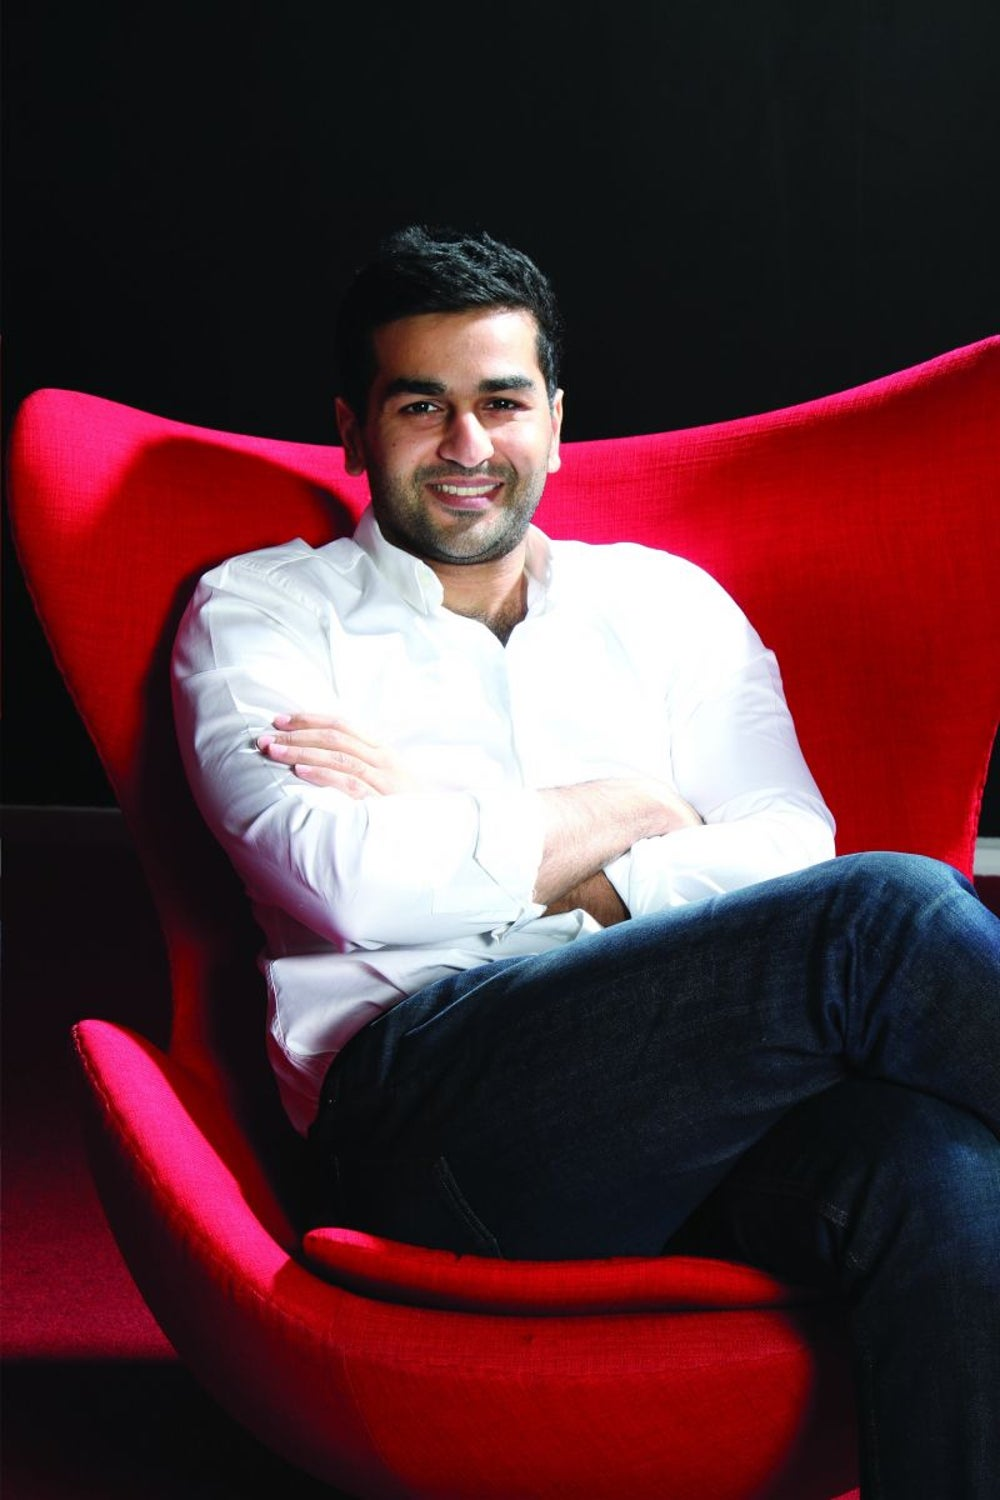 The Zen Billionaire - Kavin Bharti Mittal, 29, Founder & CEO, Hike Messenger